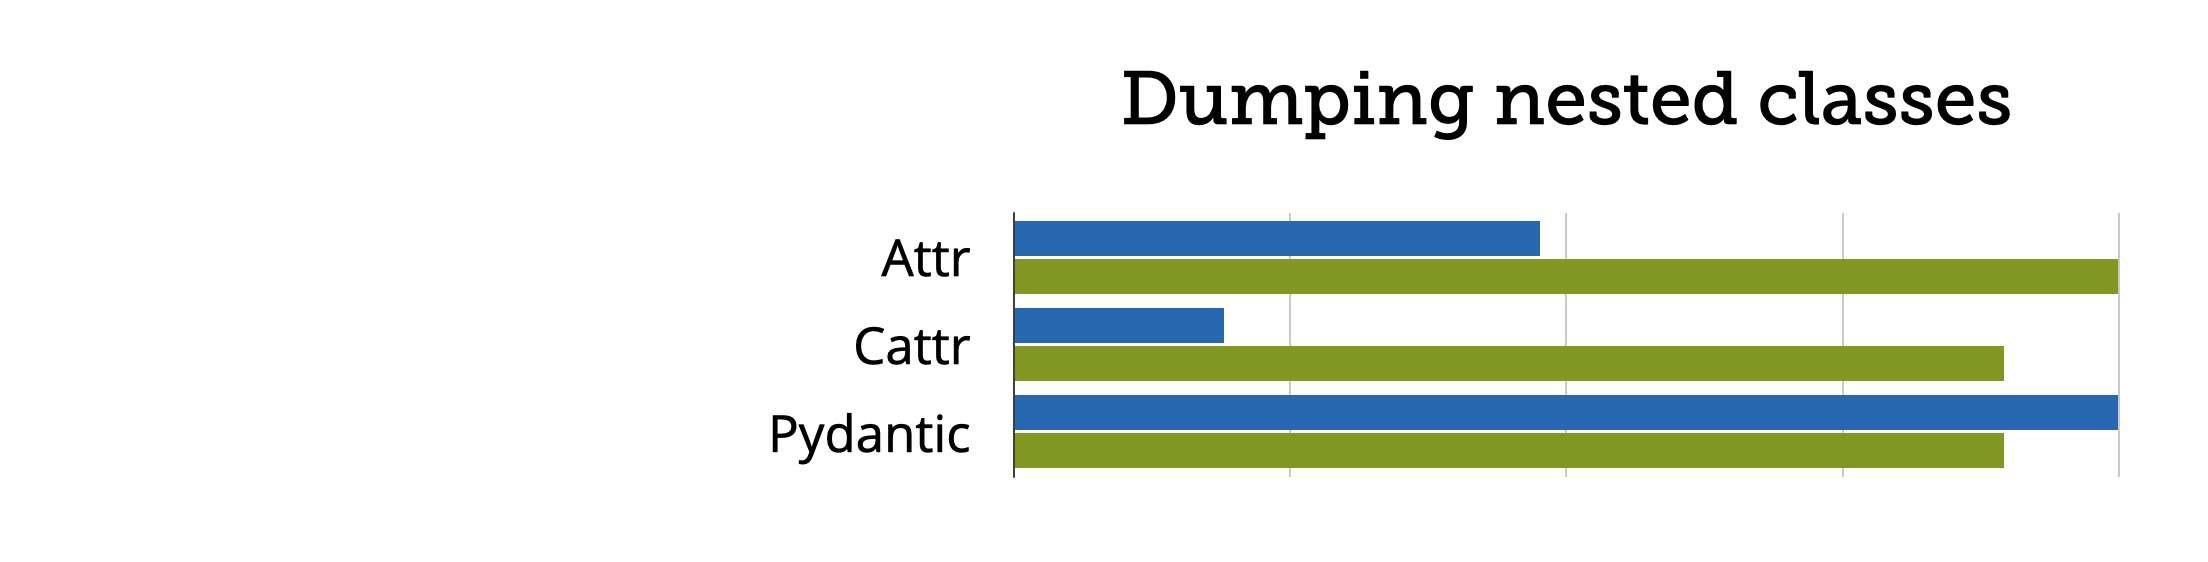 Relative time and memory consumption for dumping more complex, nested classes